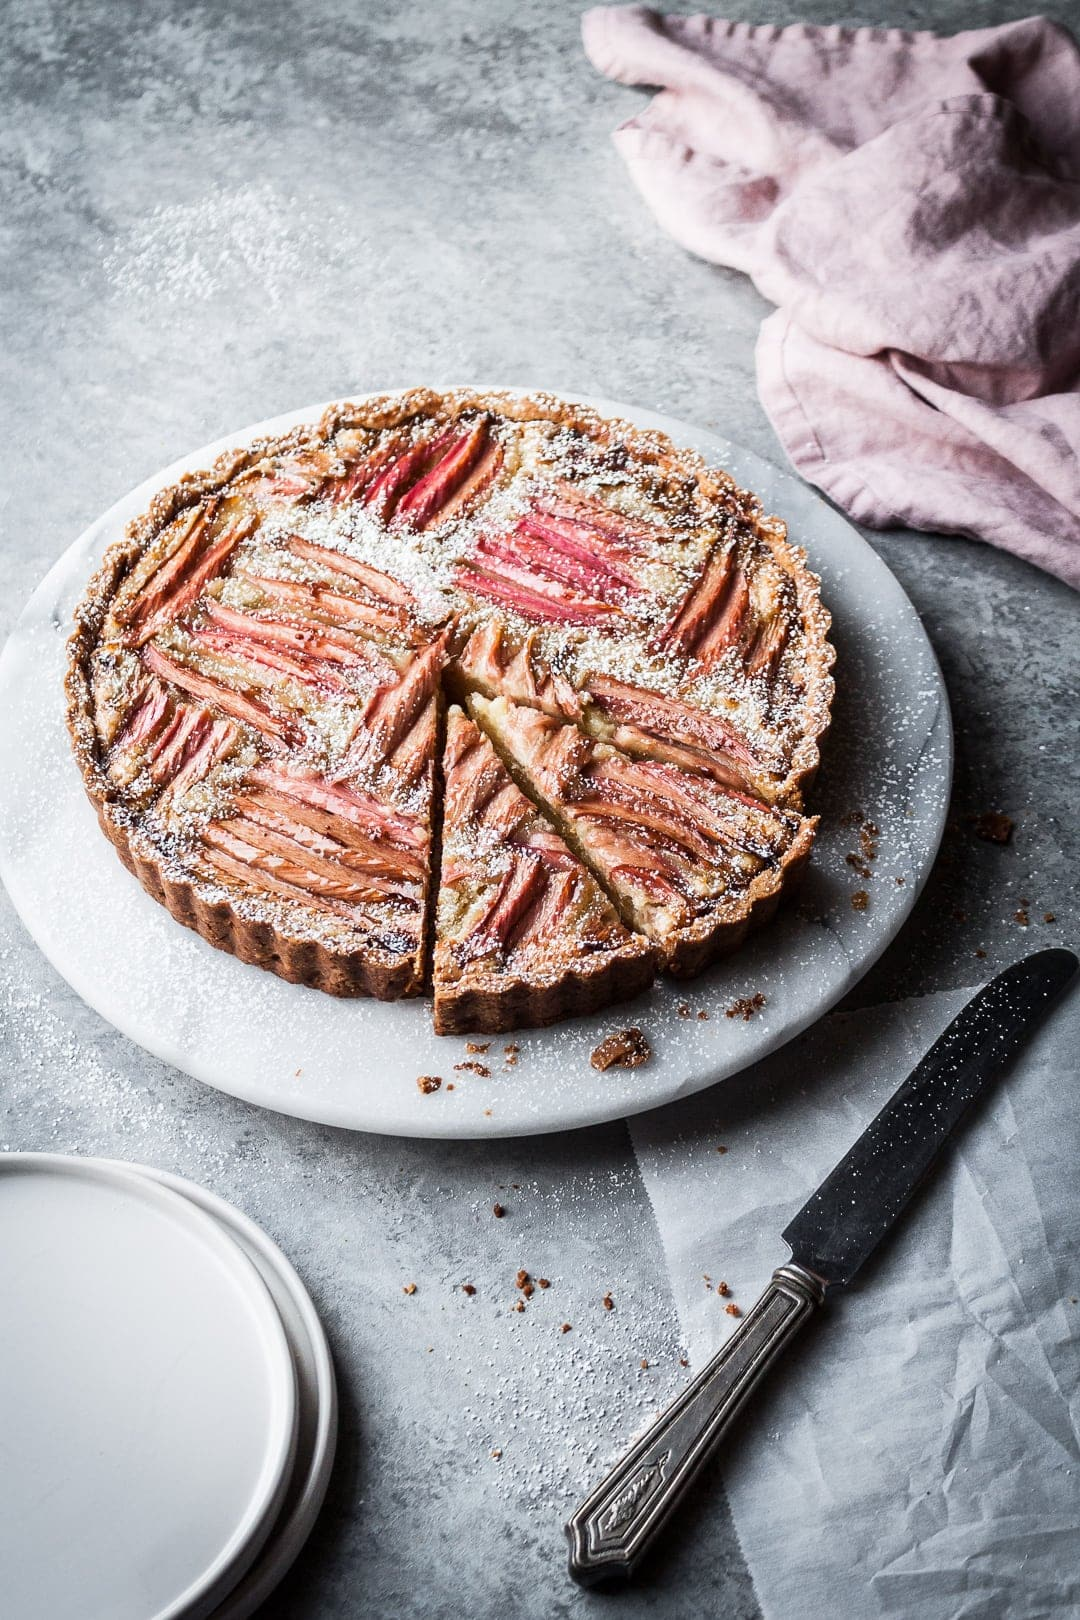 Rhubarb tart from 45 degree view with slices cut and knife on grey background nearby